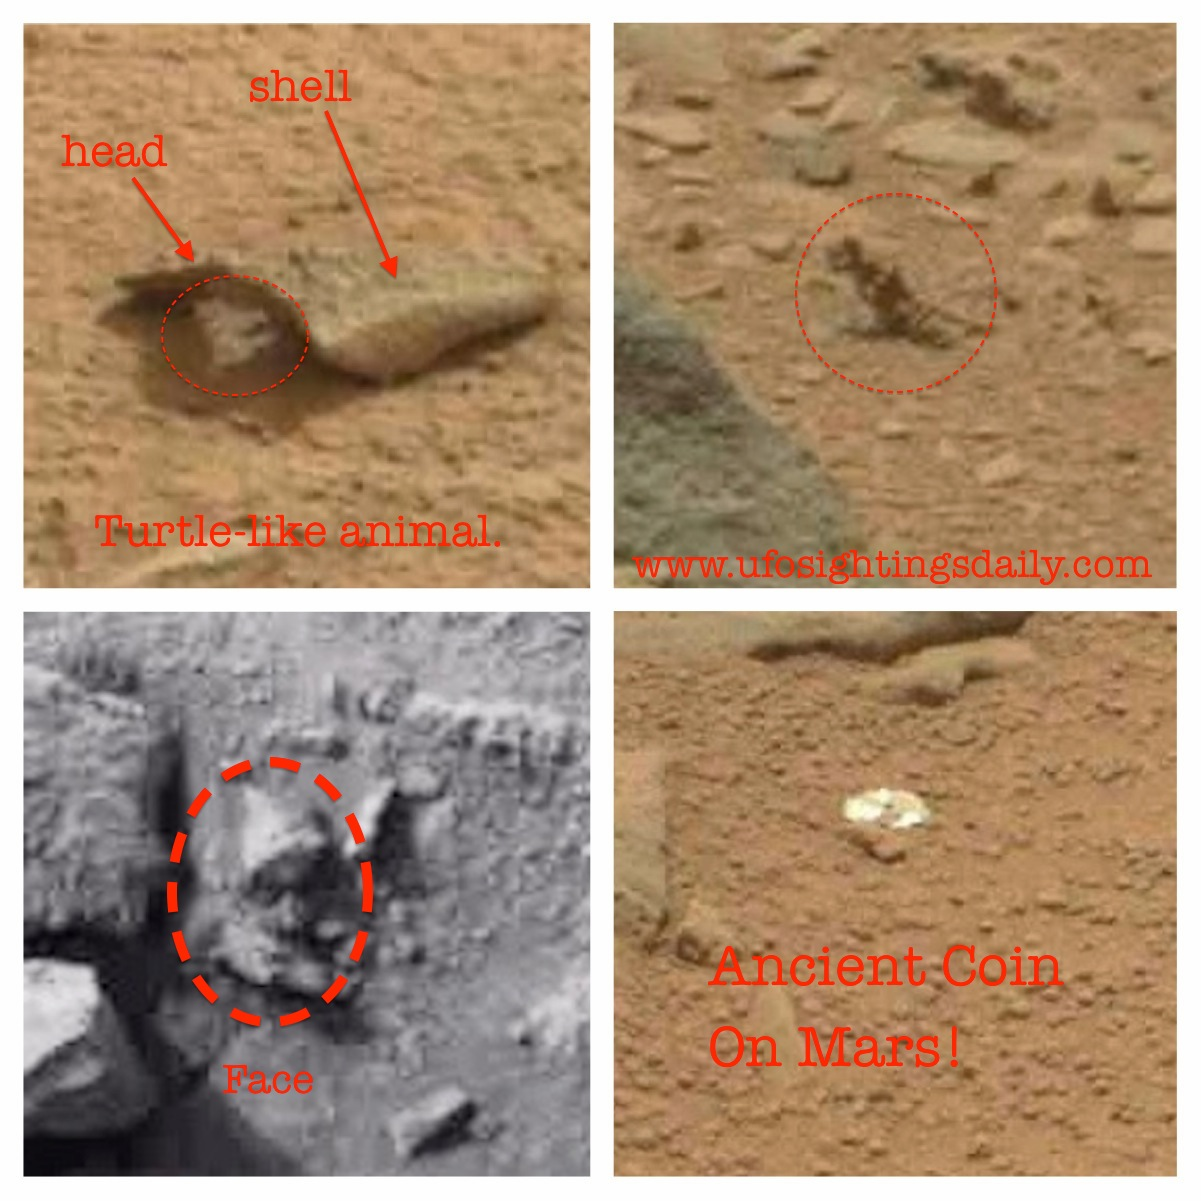 mars rover finds animal - photo #23